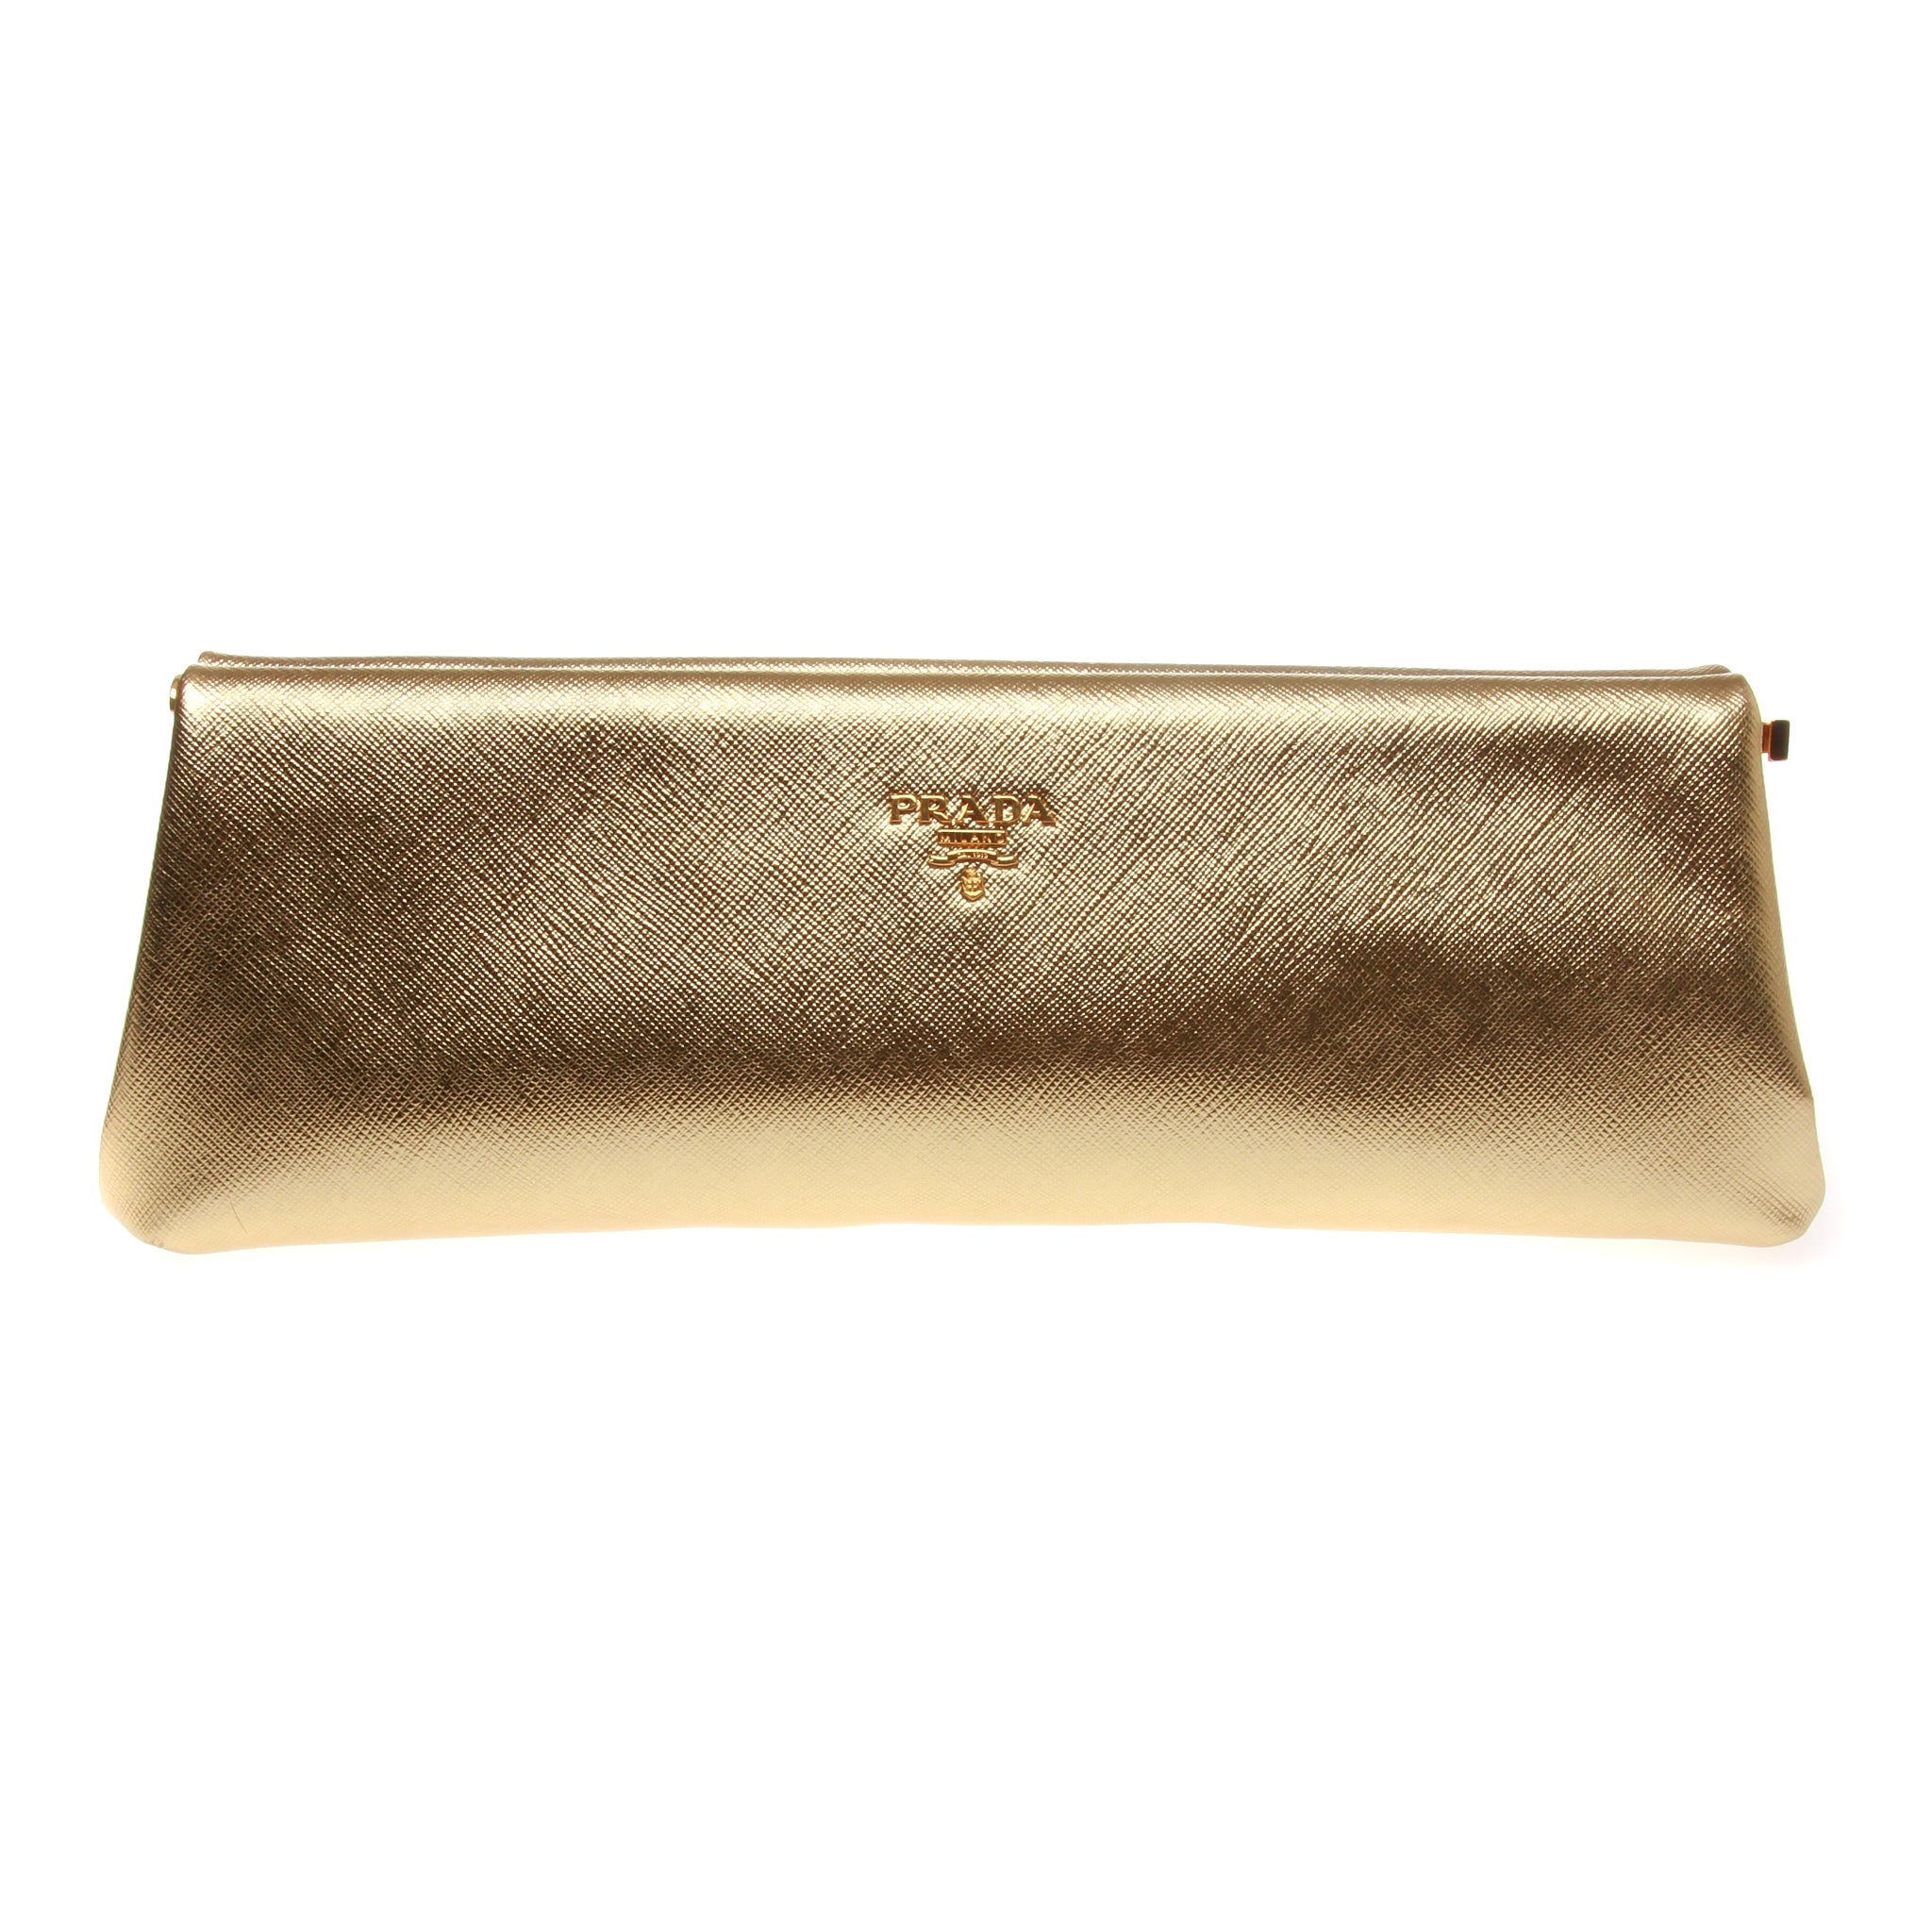 4b7452accb58 Prada Saffiano Gold Metallic Lux Frame Clutch at 1stdibs